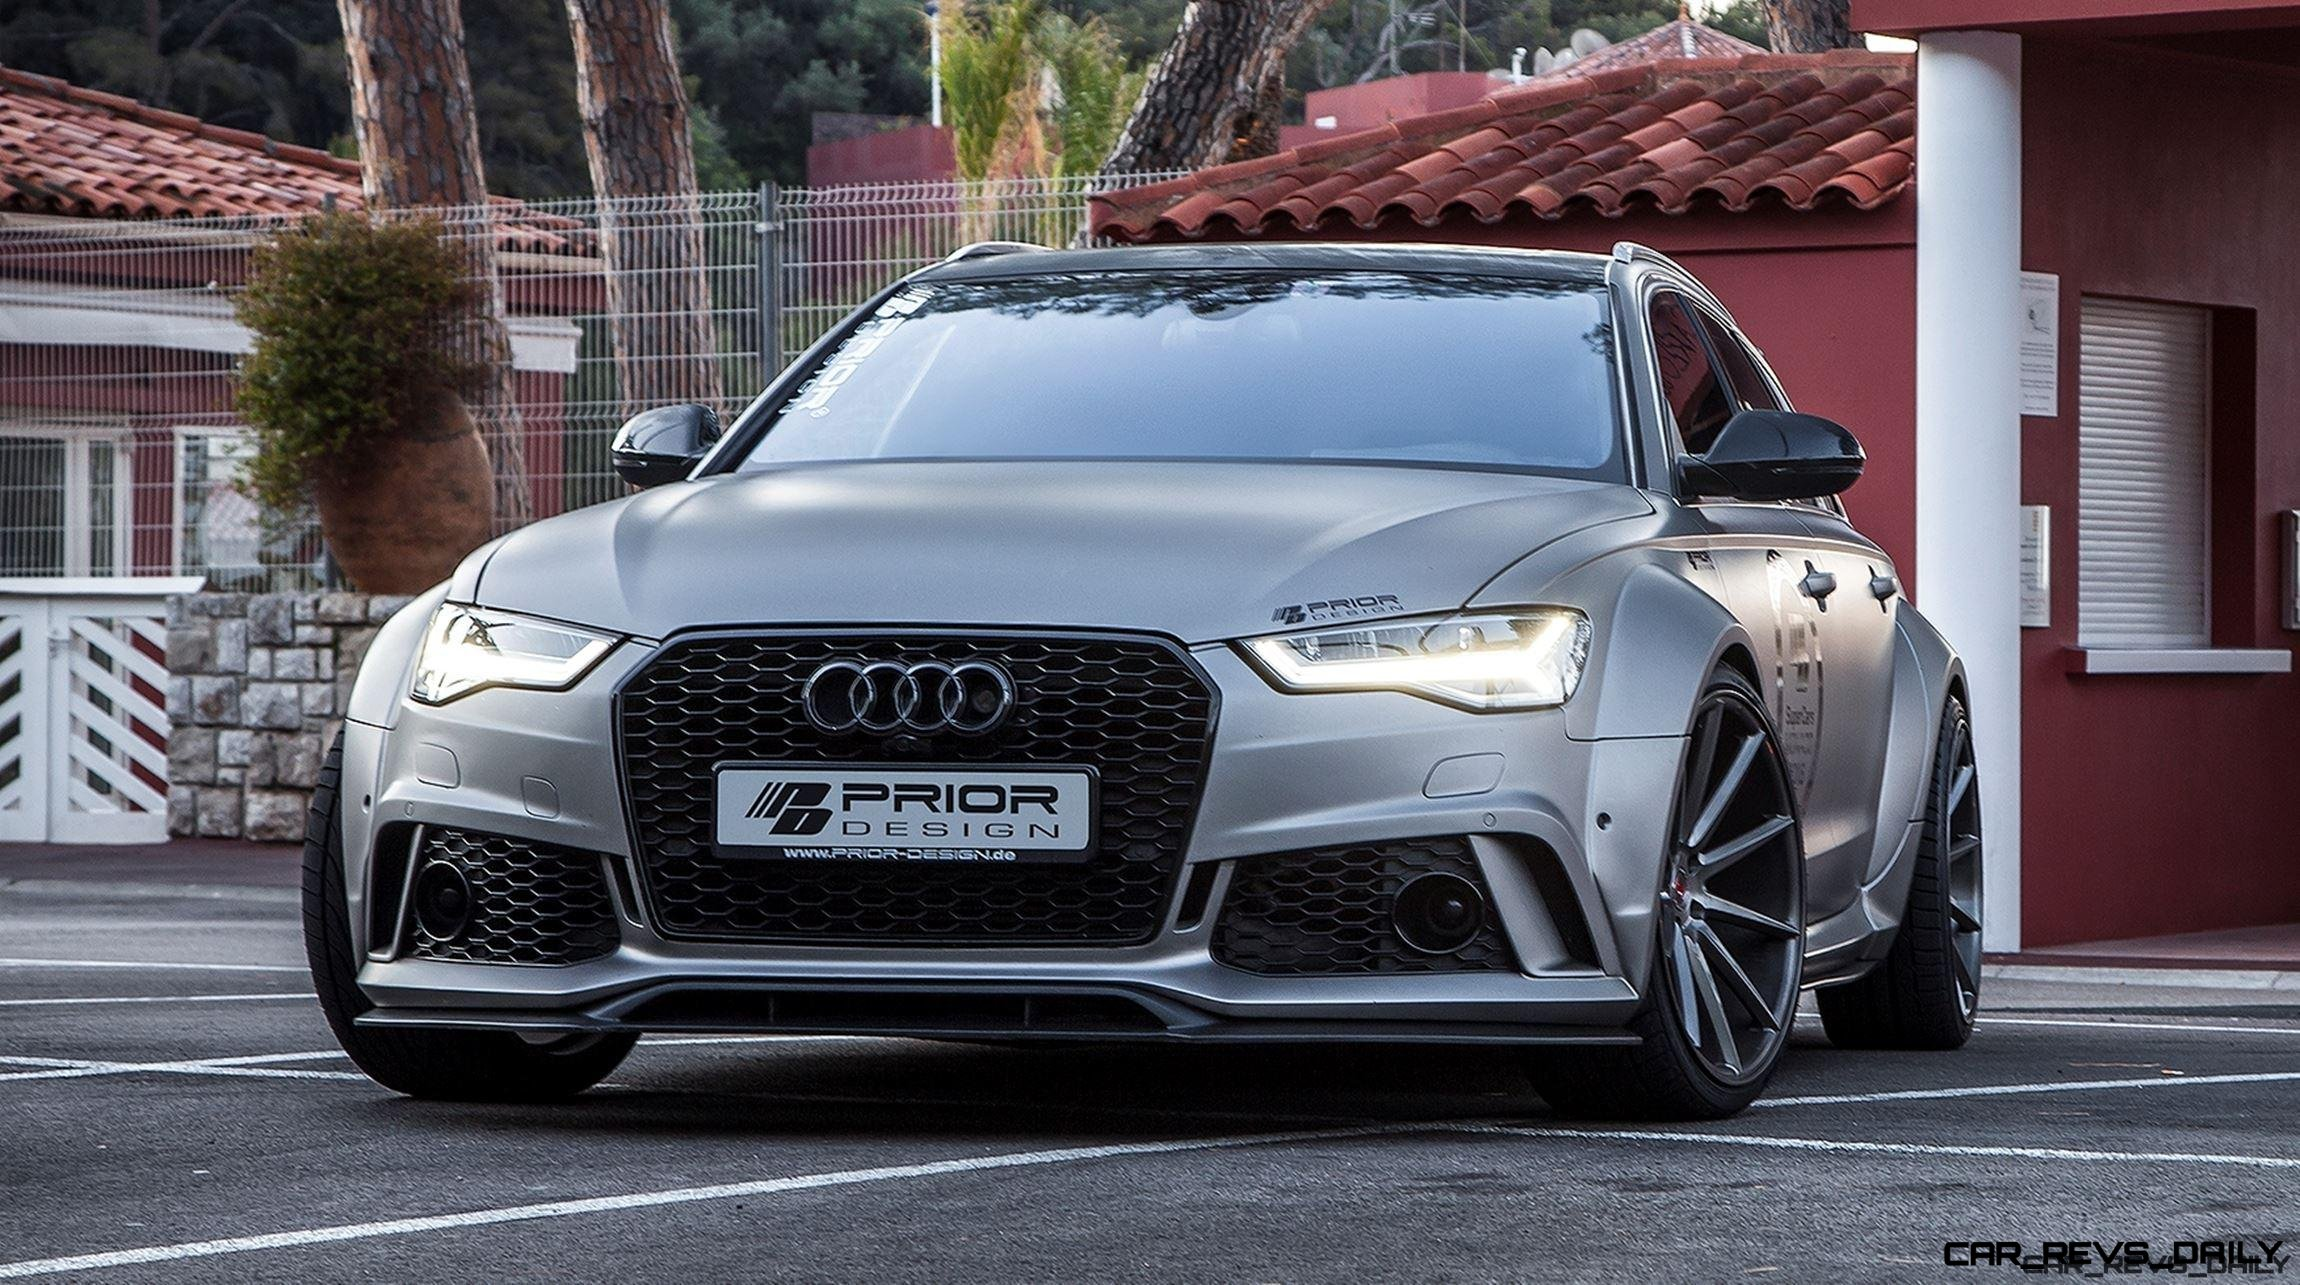 Audi A6 S6 Rs6 Widebody Prior Design Pd600r Is Hot New